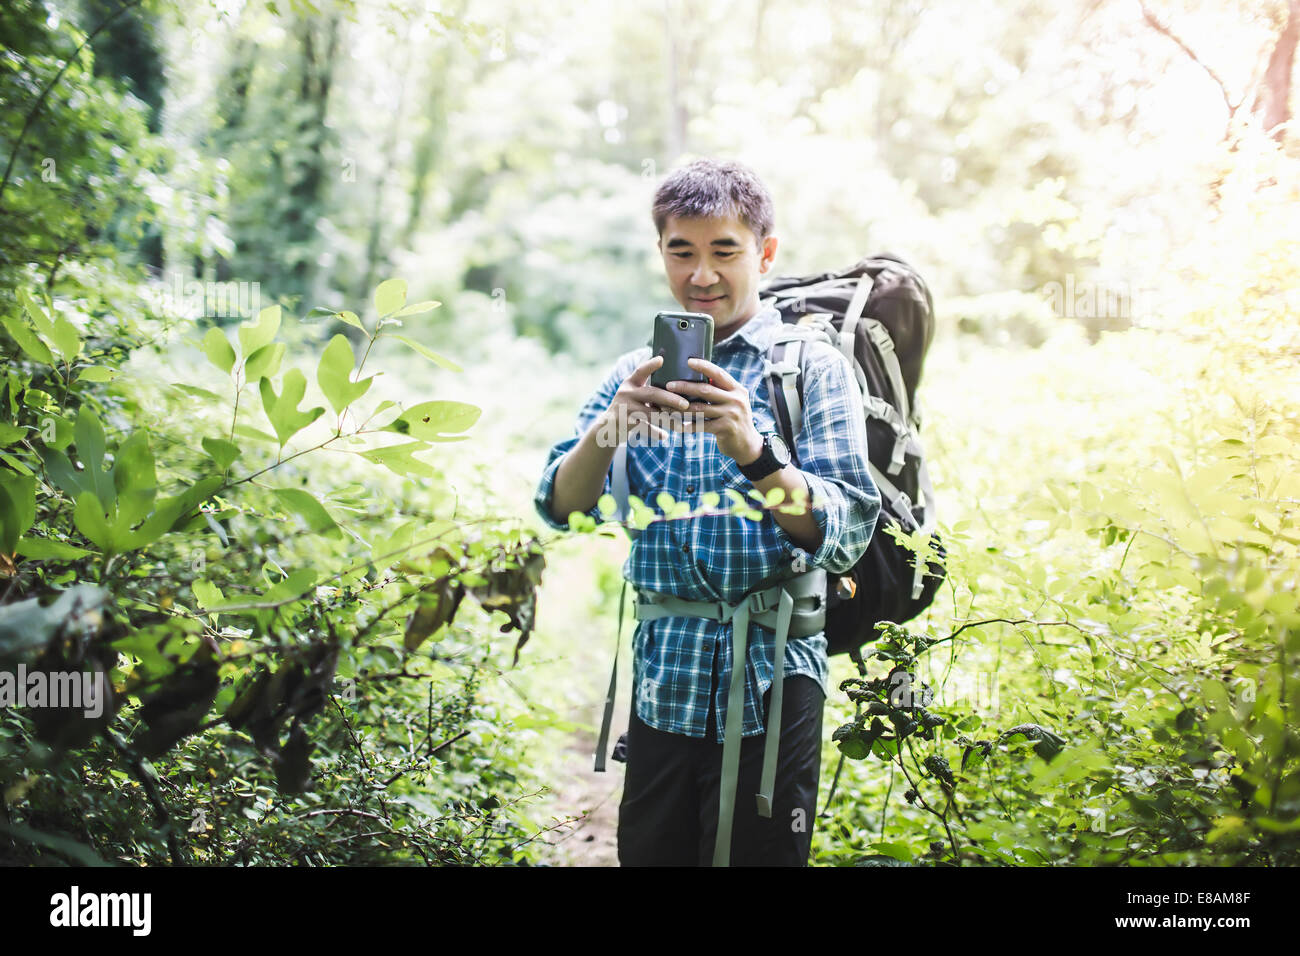 Hiker taking photo with camera phone in forest - Stock Image